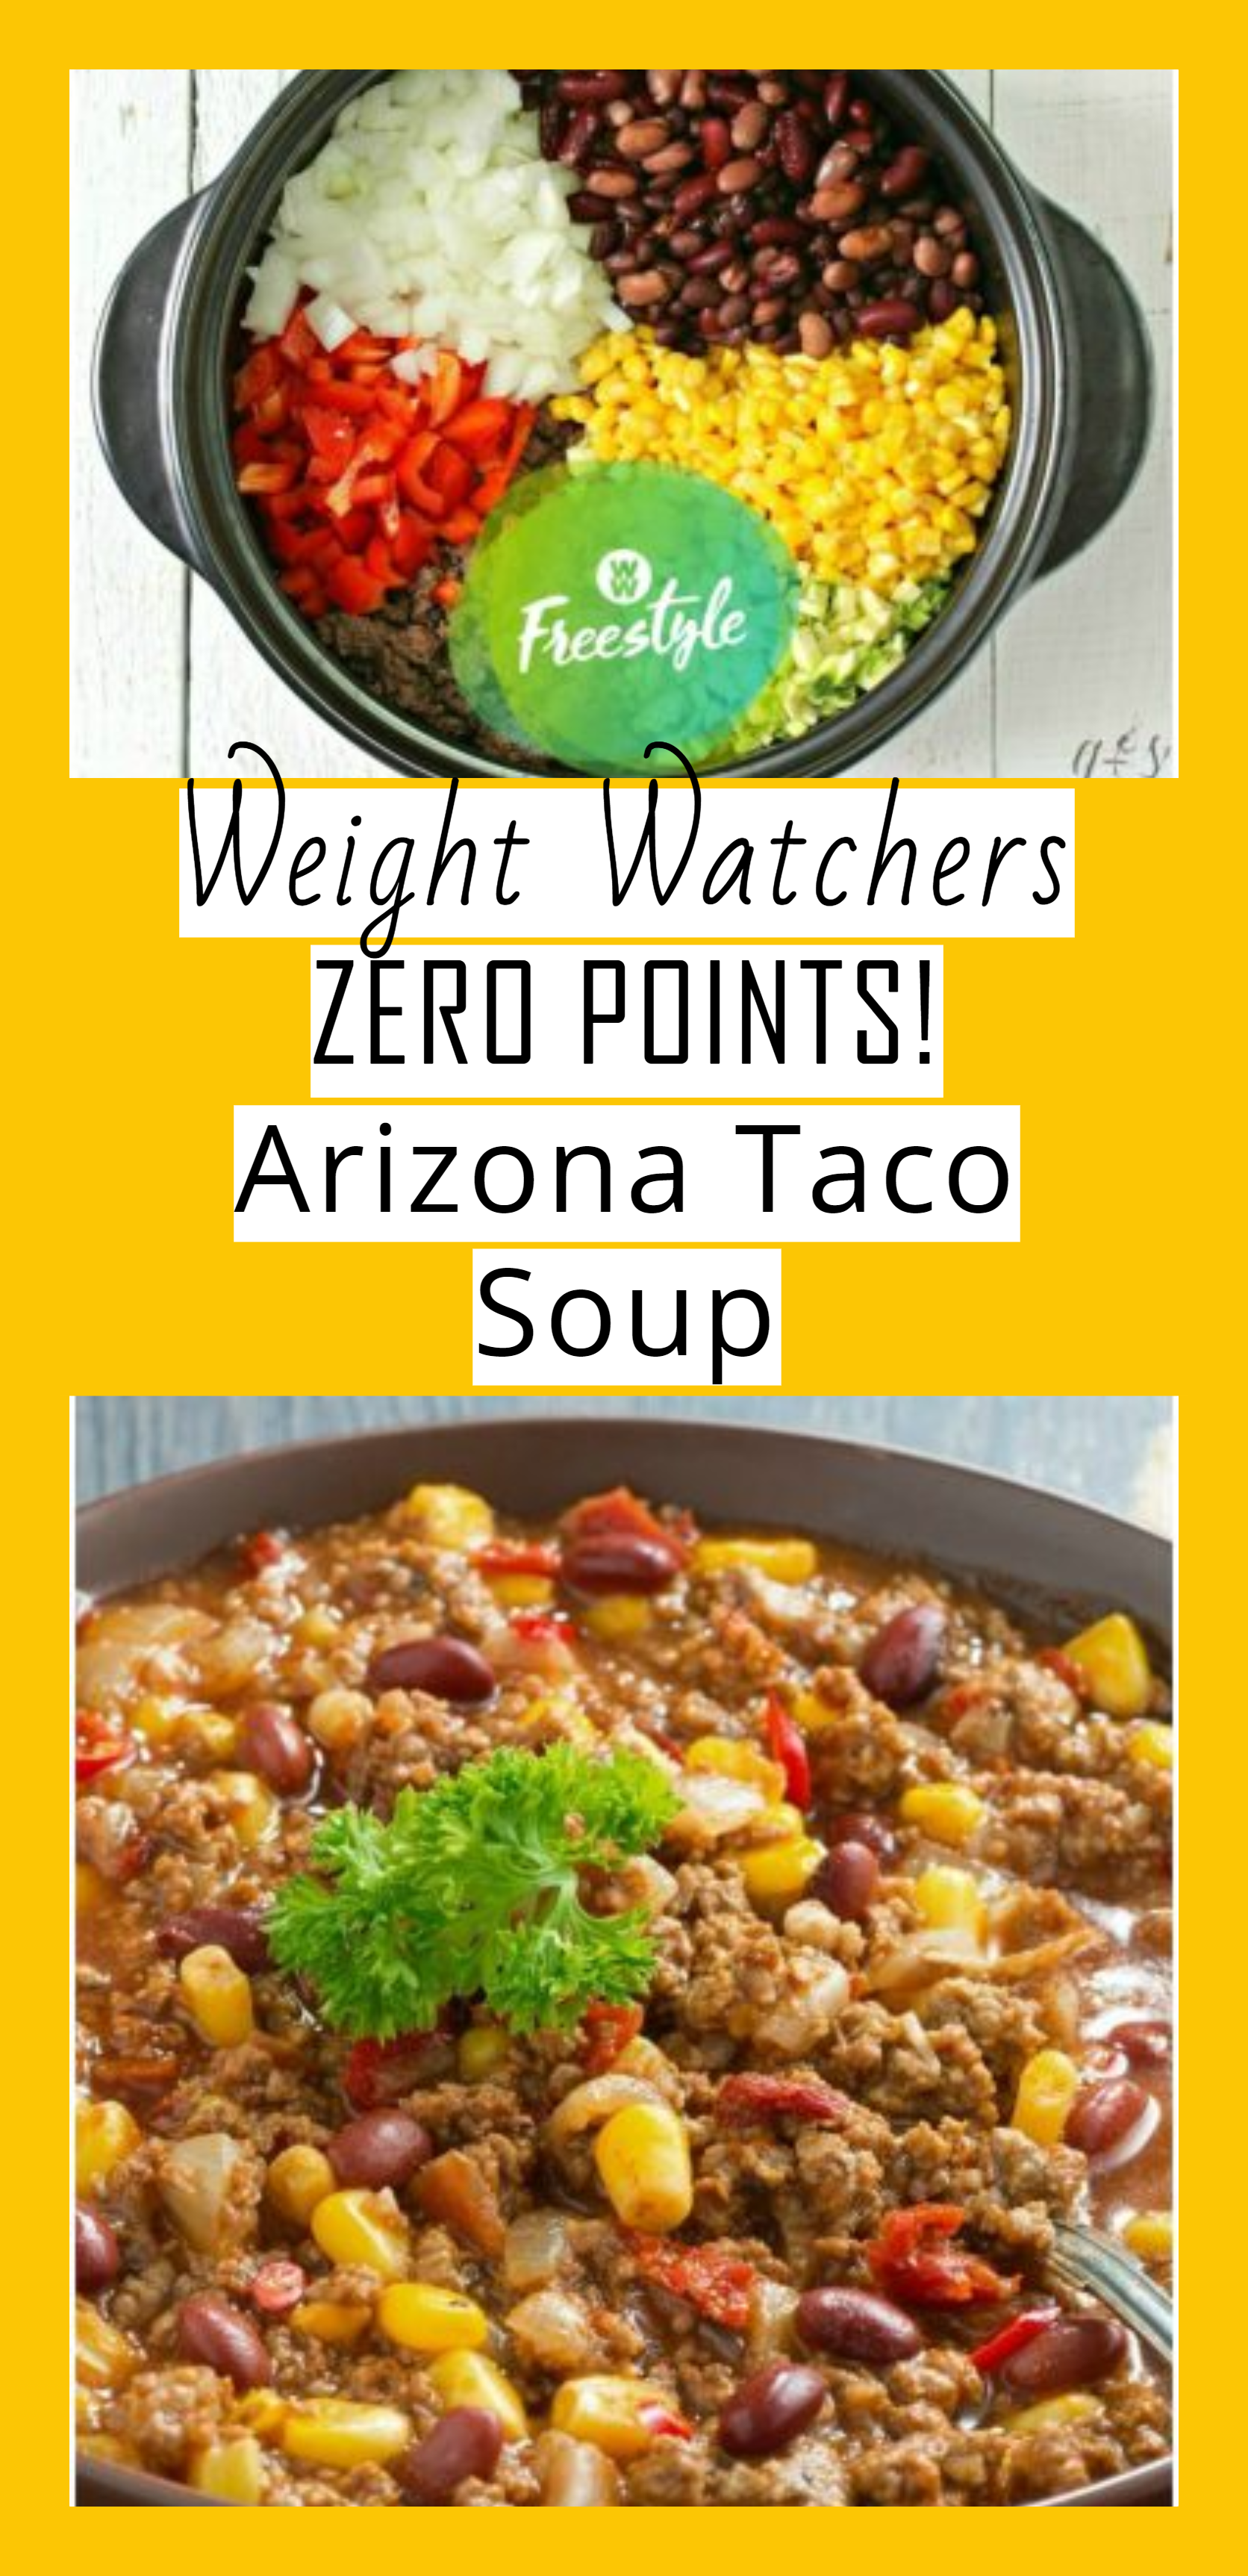 Arizona Taco Soup Weight Watchers Freestyle ZERO POINTS! - weight watchers recipes freestyle